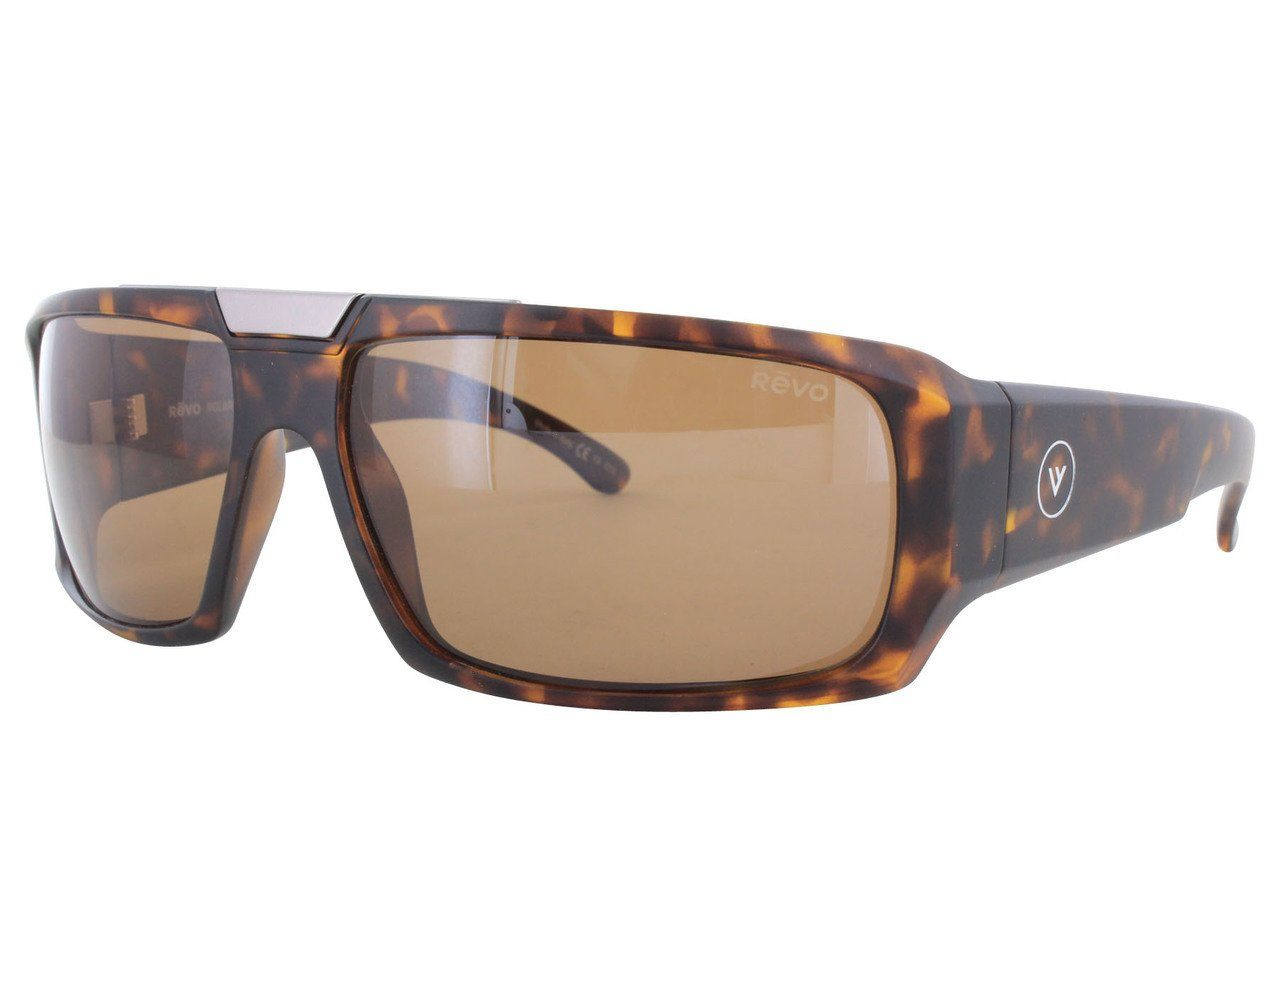 Revo Apollo 1004-02 BBW - Sunglasses - livesunglasses-com